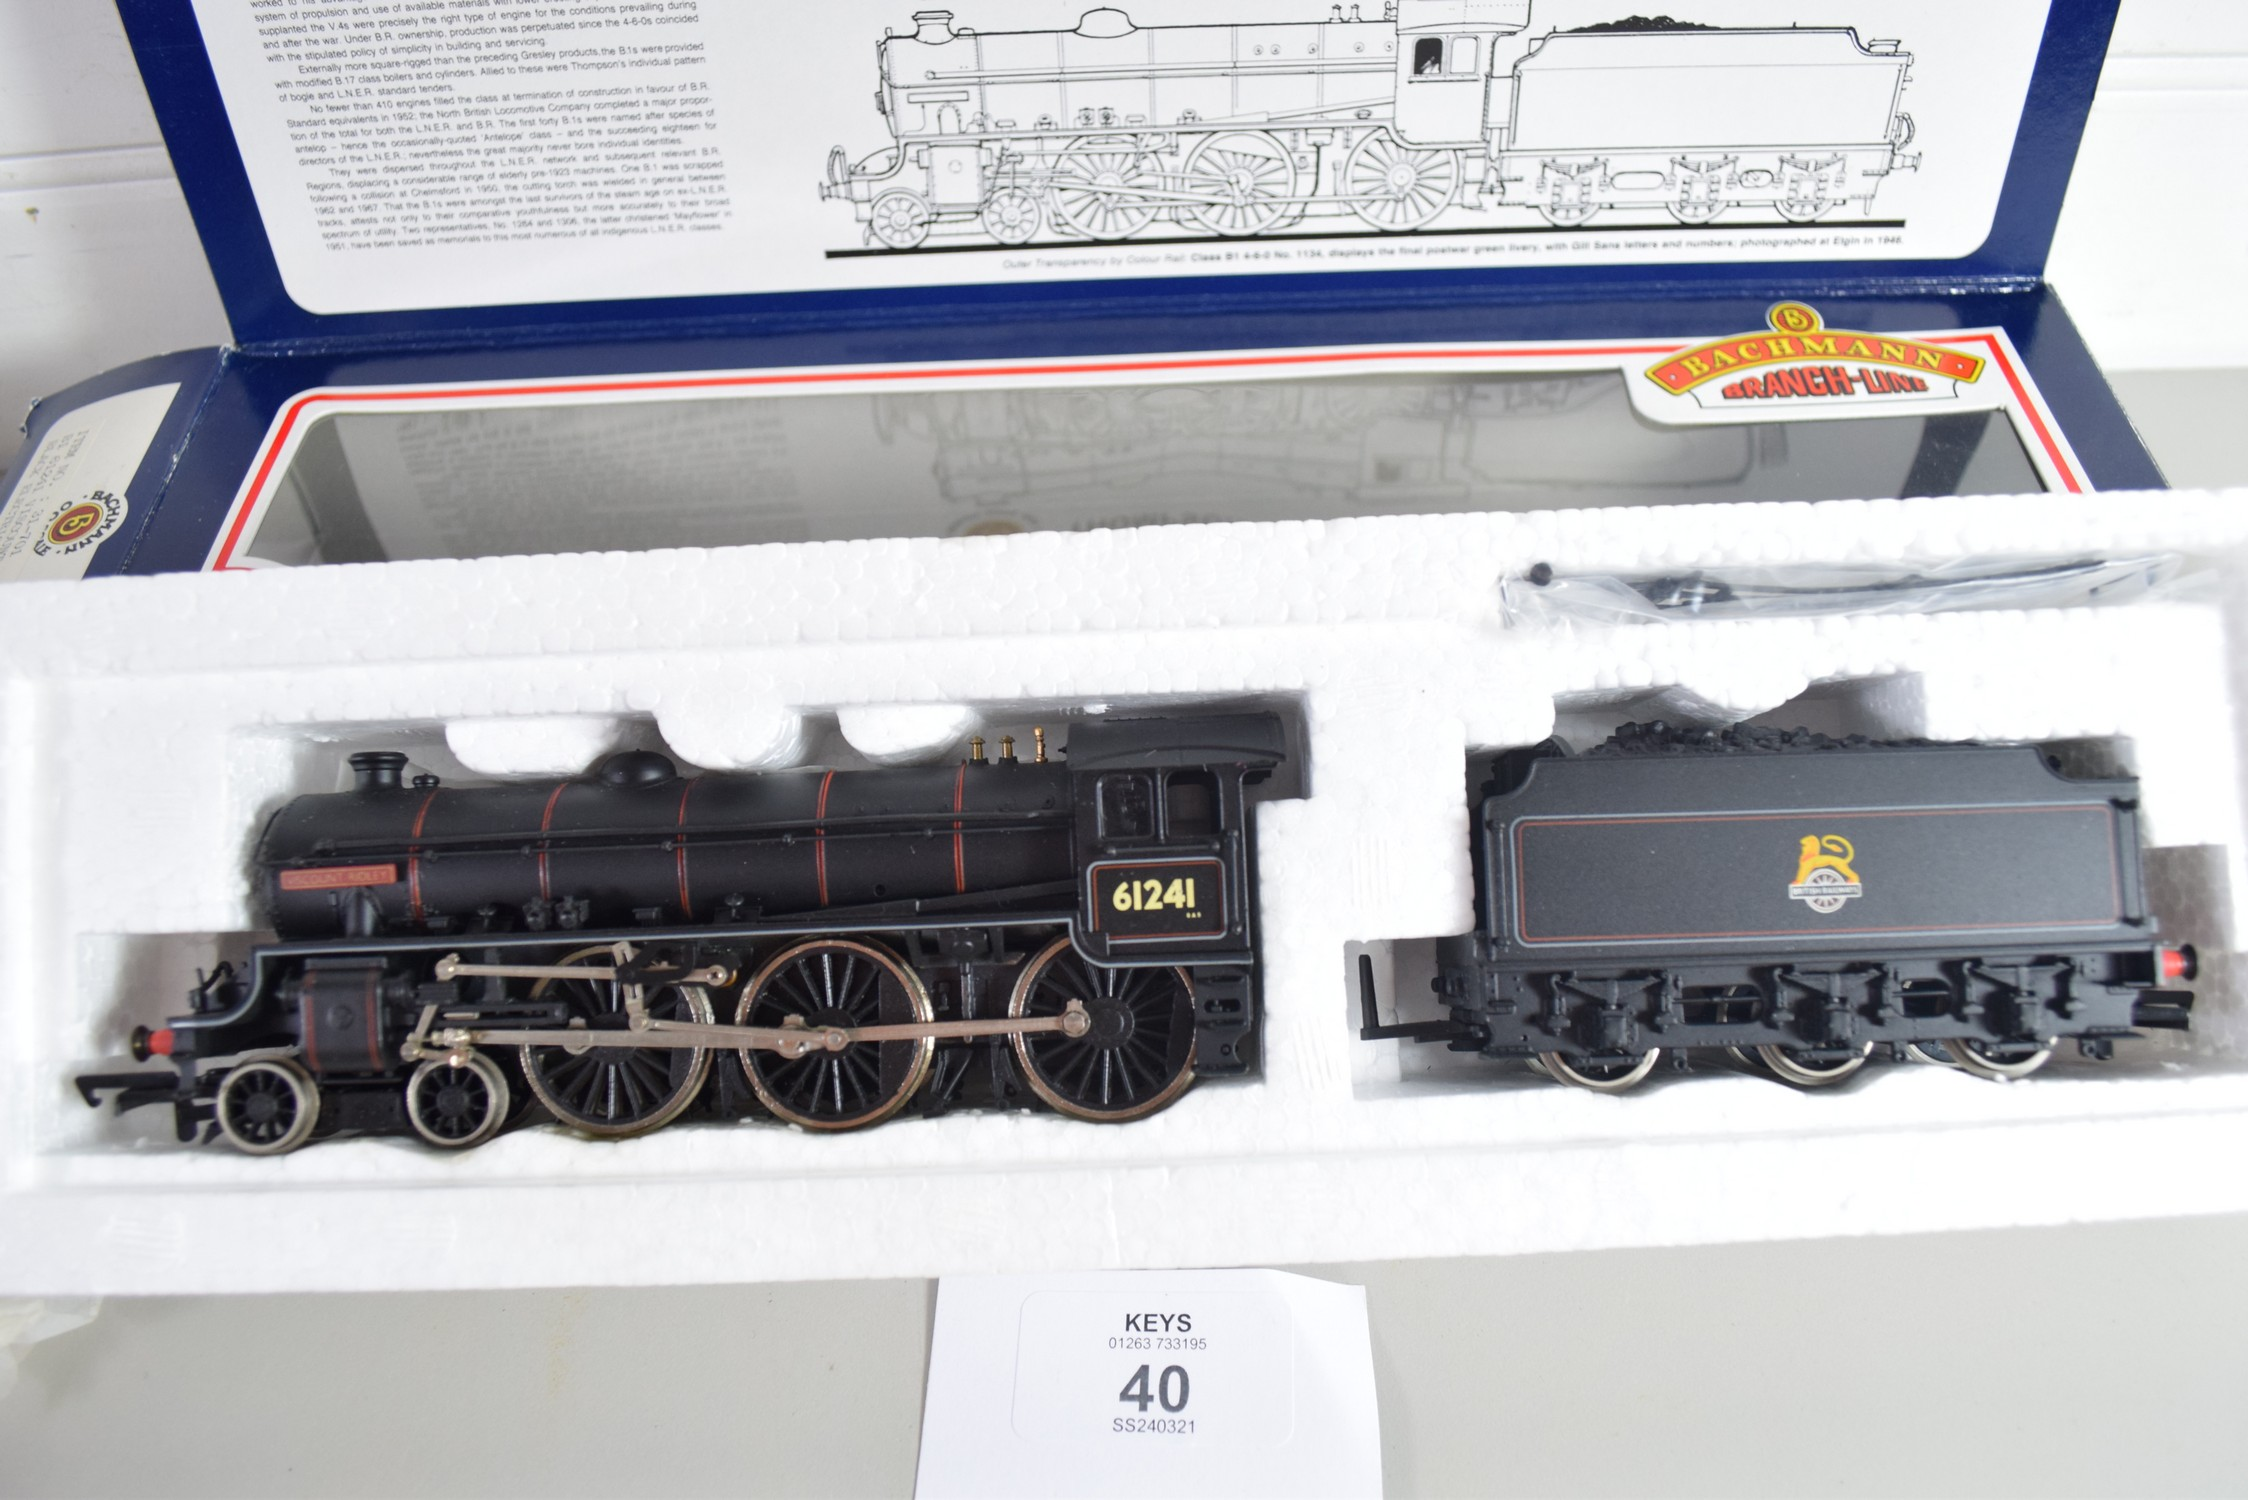 """Boxed Bachmann 00 gauge 31-701 B1 """"Viscount Ridley"""" BR black, electric generator No 61241 - Image 3 of 3"""